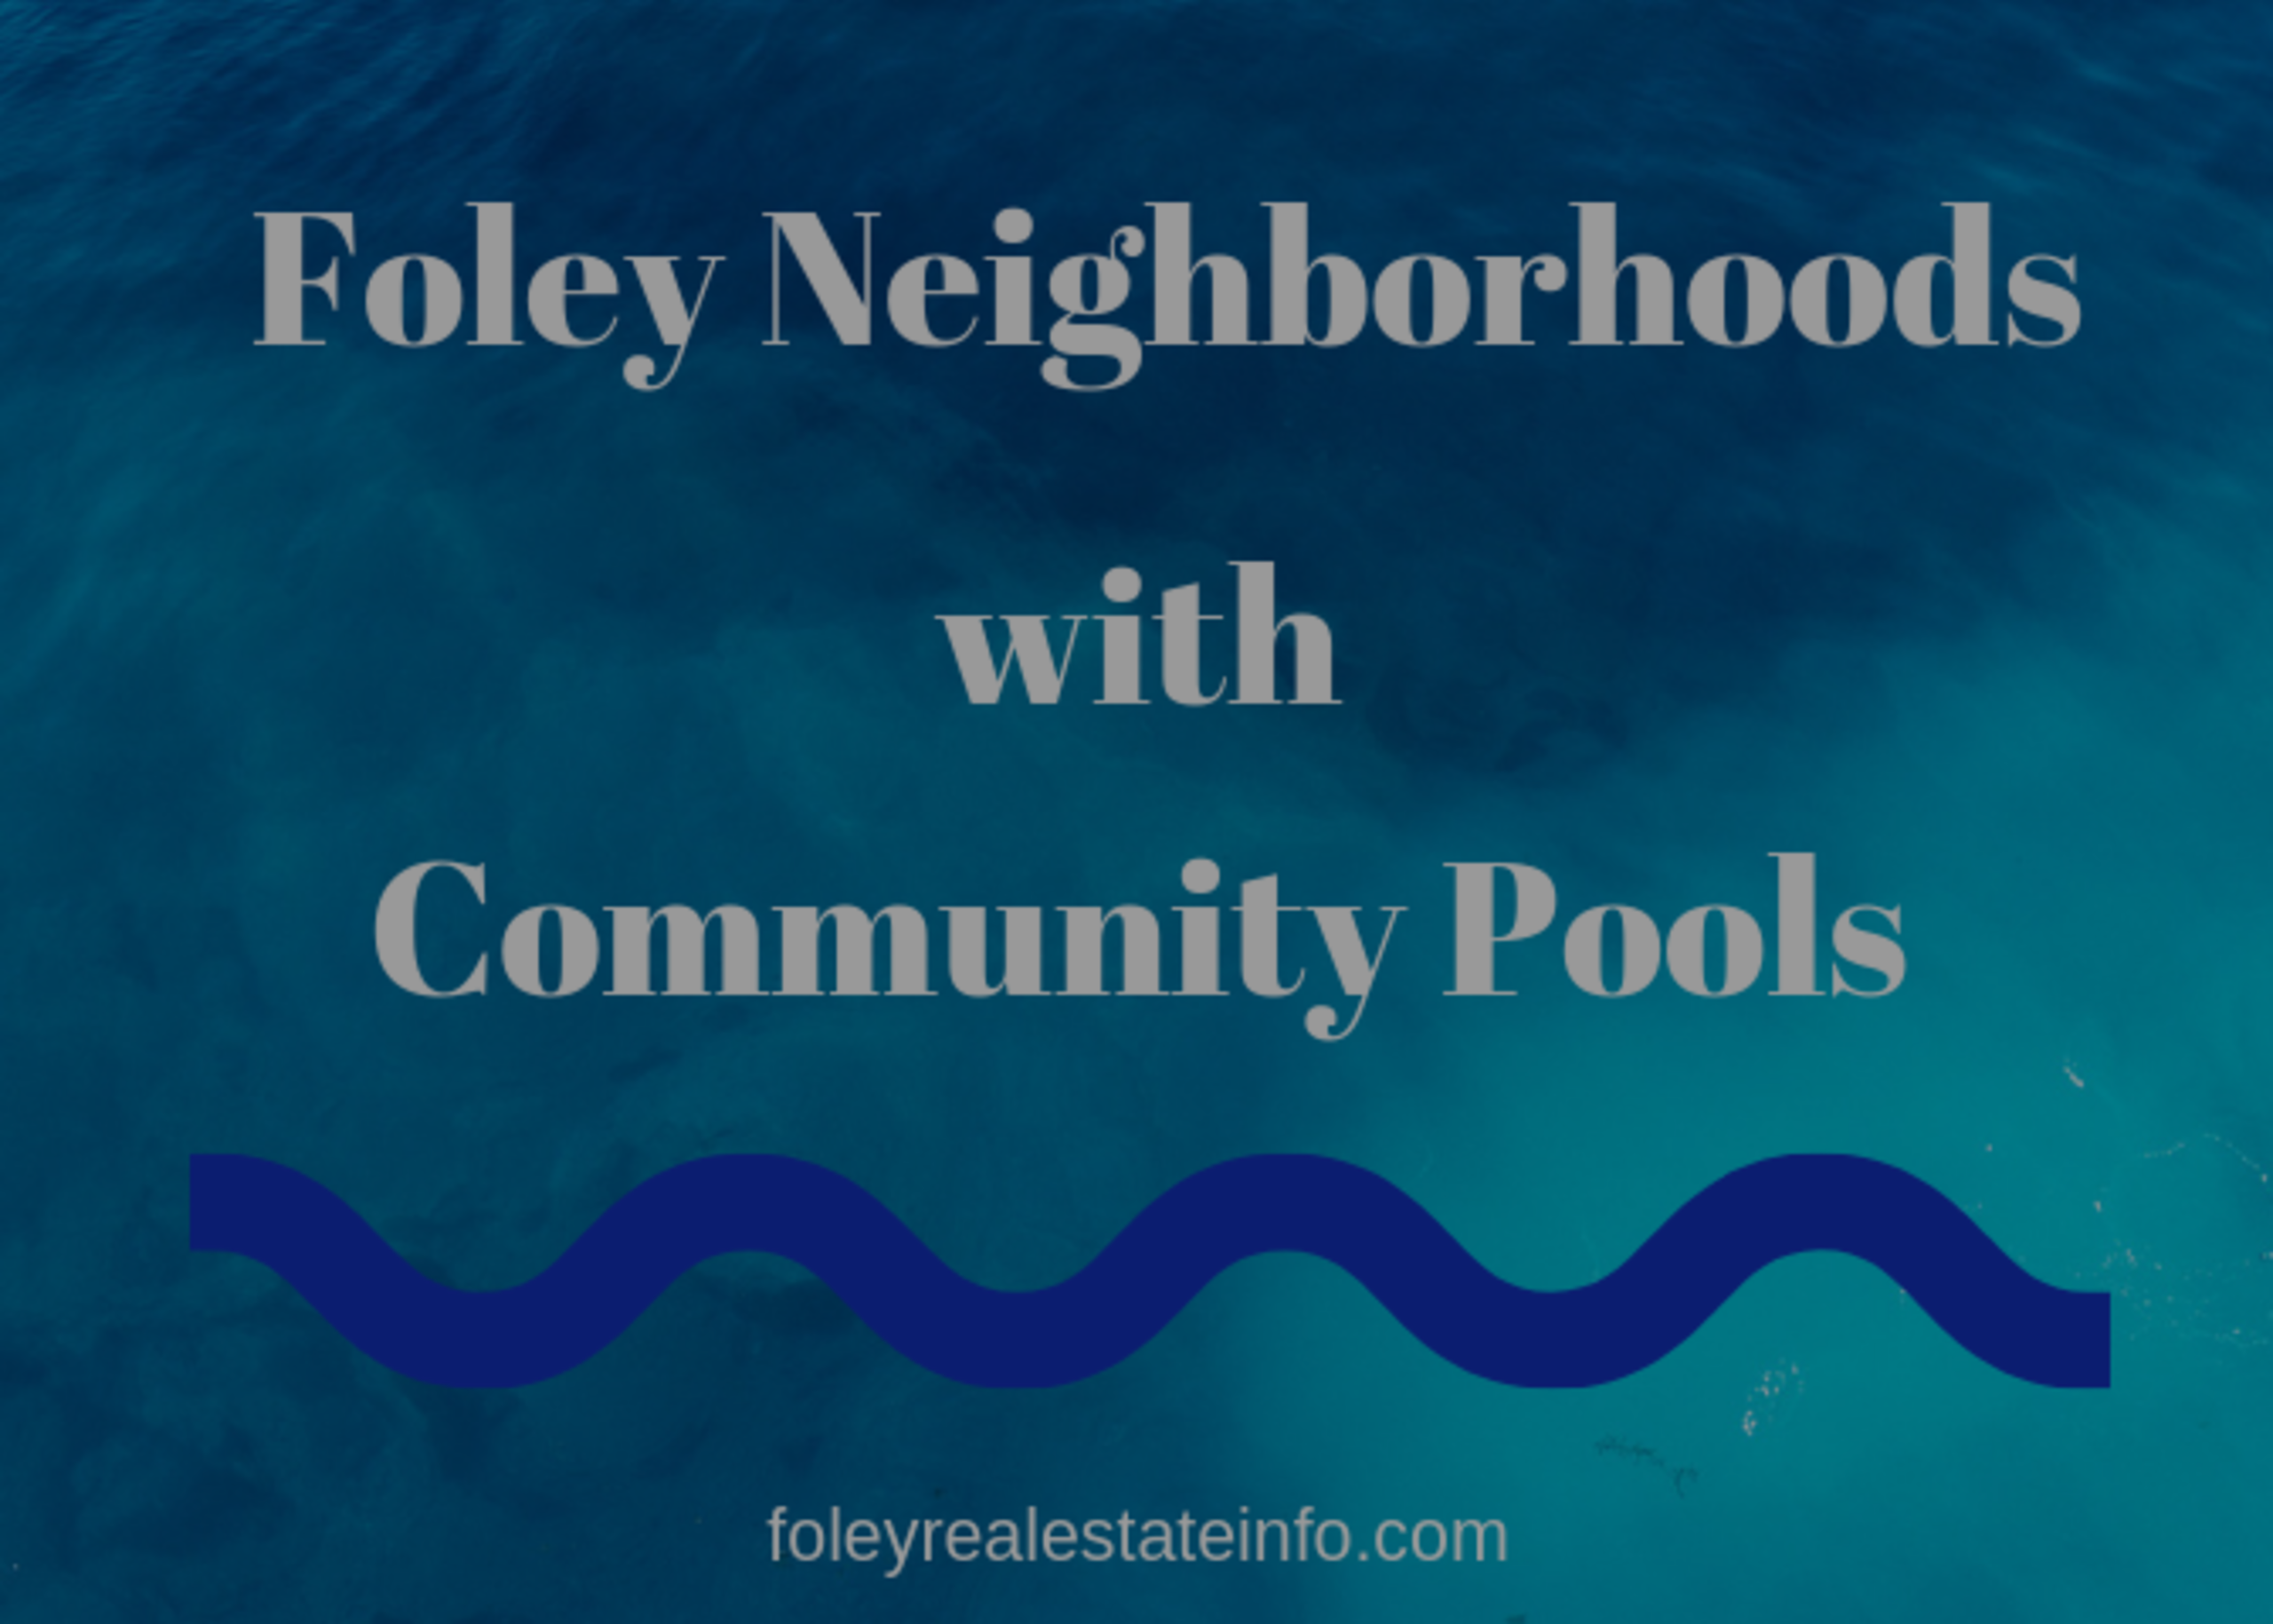 Foley Neighborhoods with Community Pools